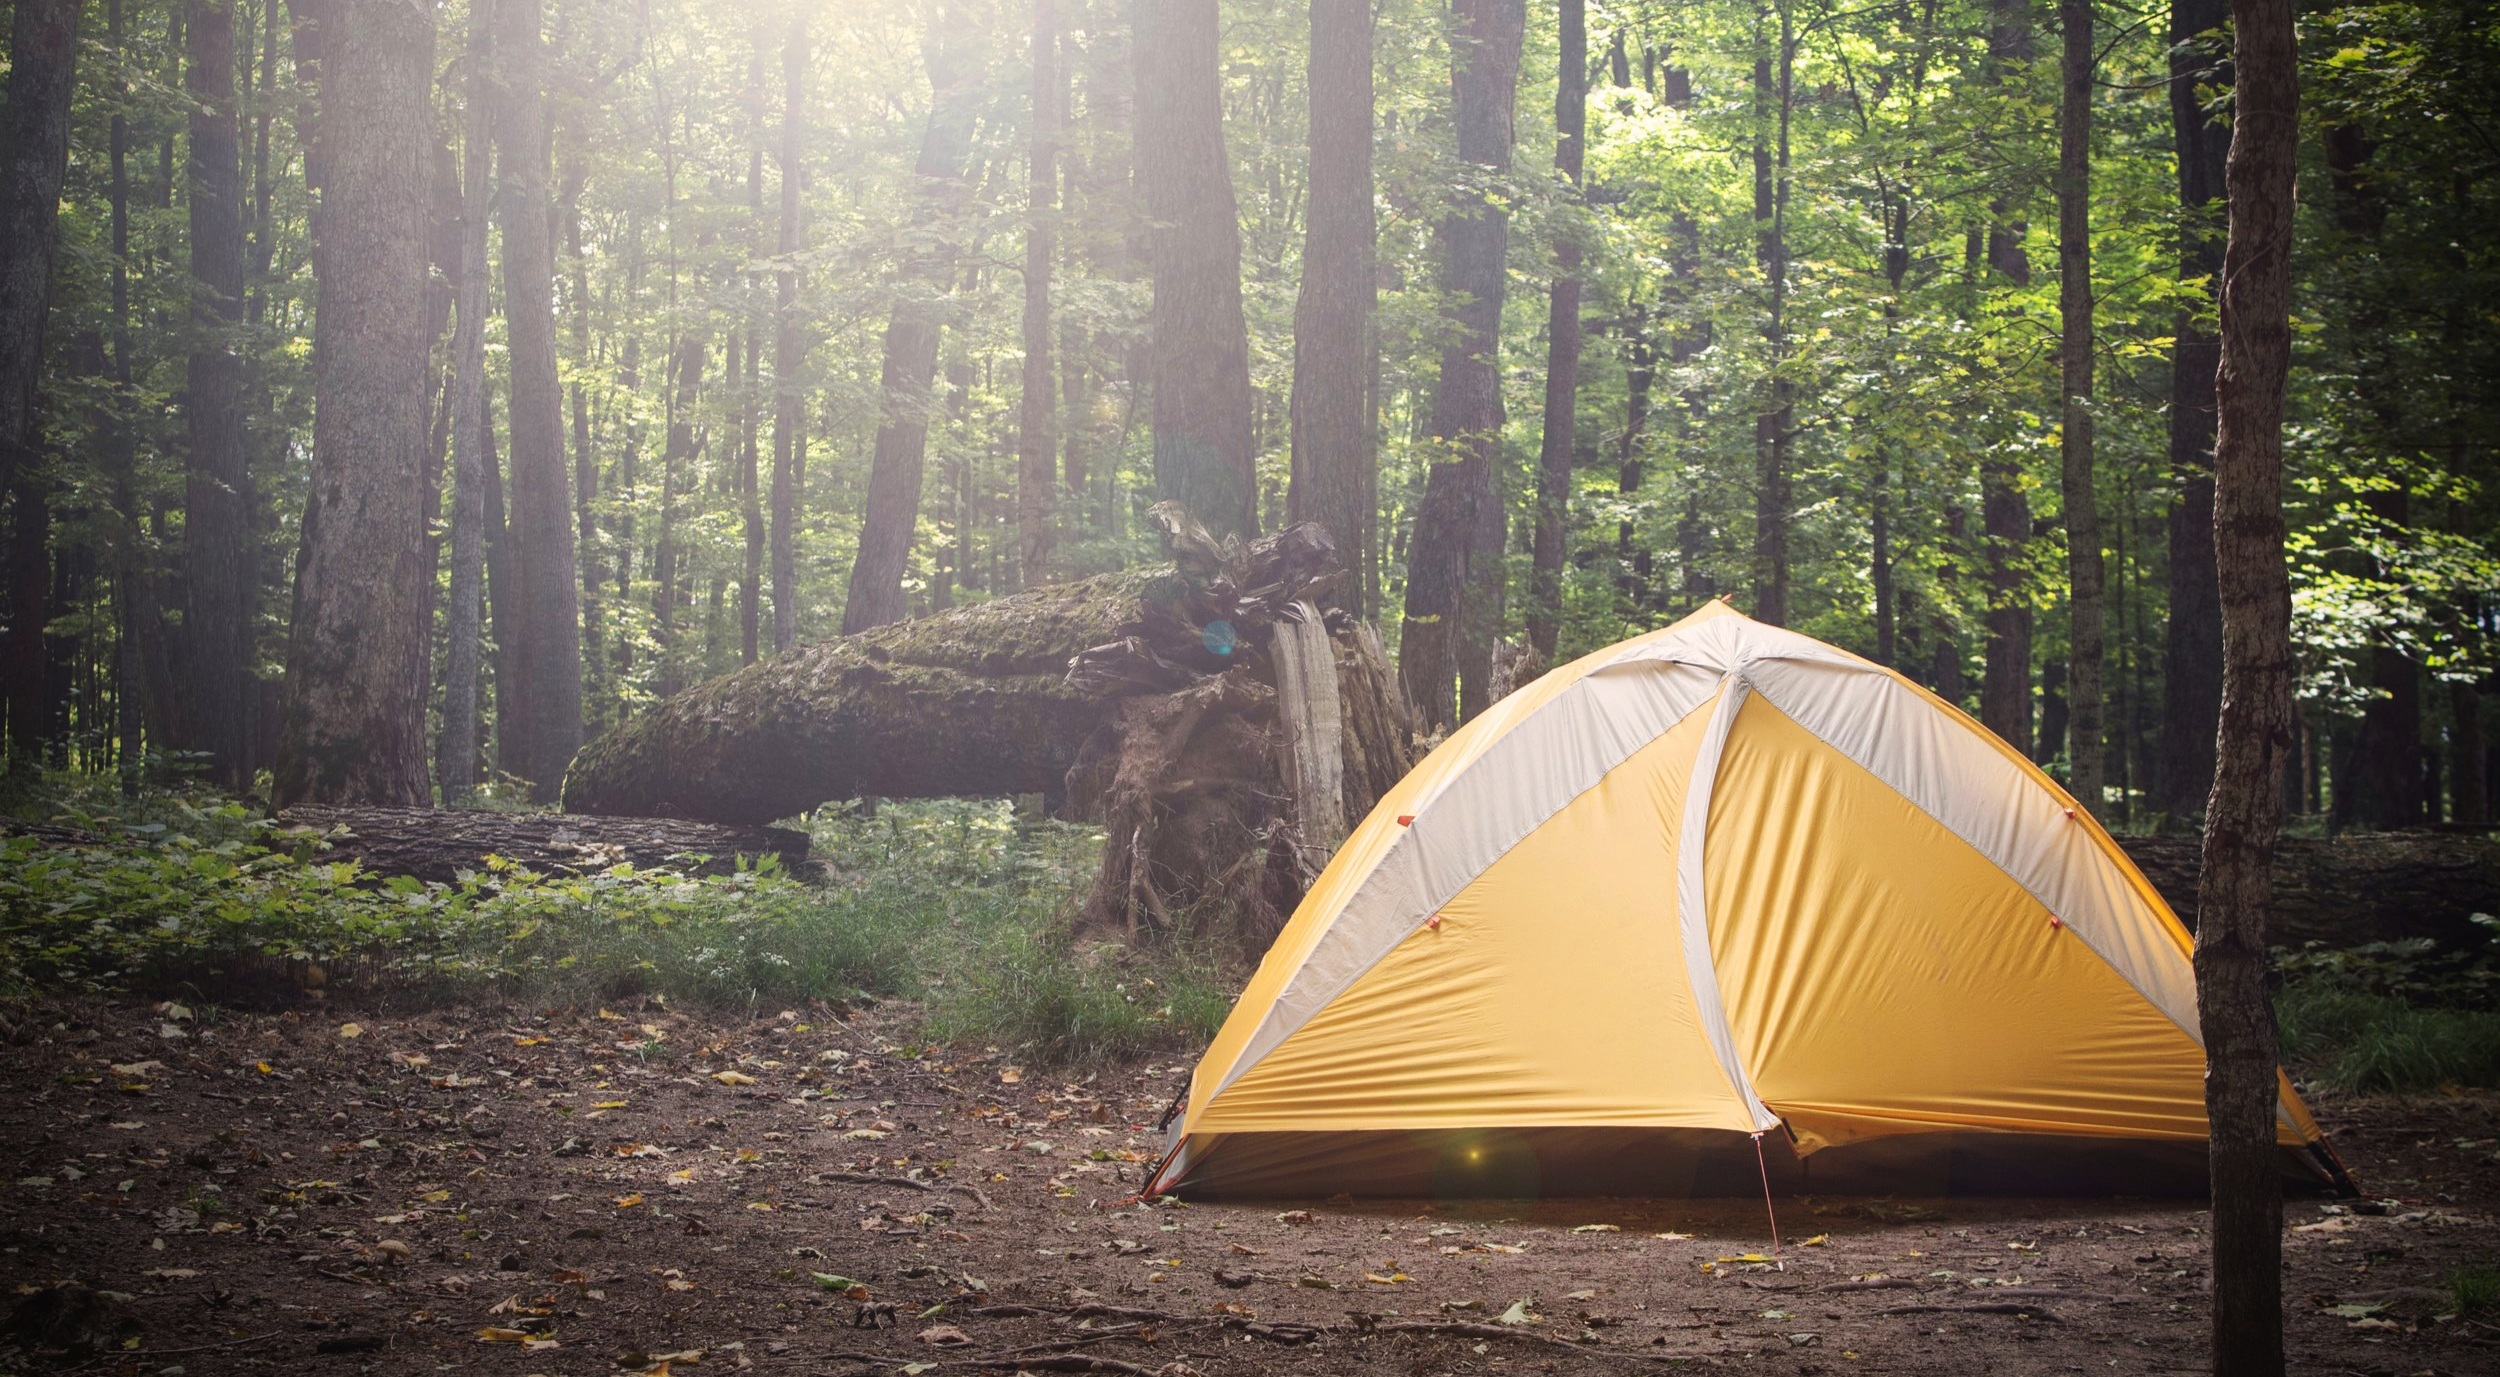 OTHER - If you don't want to stay in one of the cabins you can either bring a tent and camp or stay at home and commute back and forth. For both options there is no cost. You must still register if you choose either of these options.